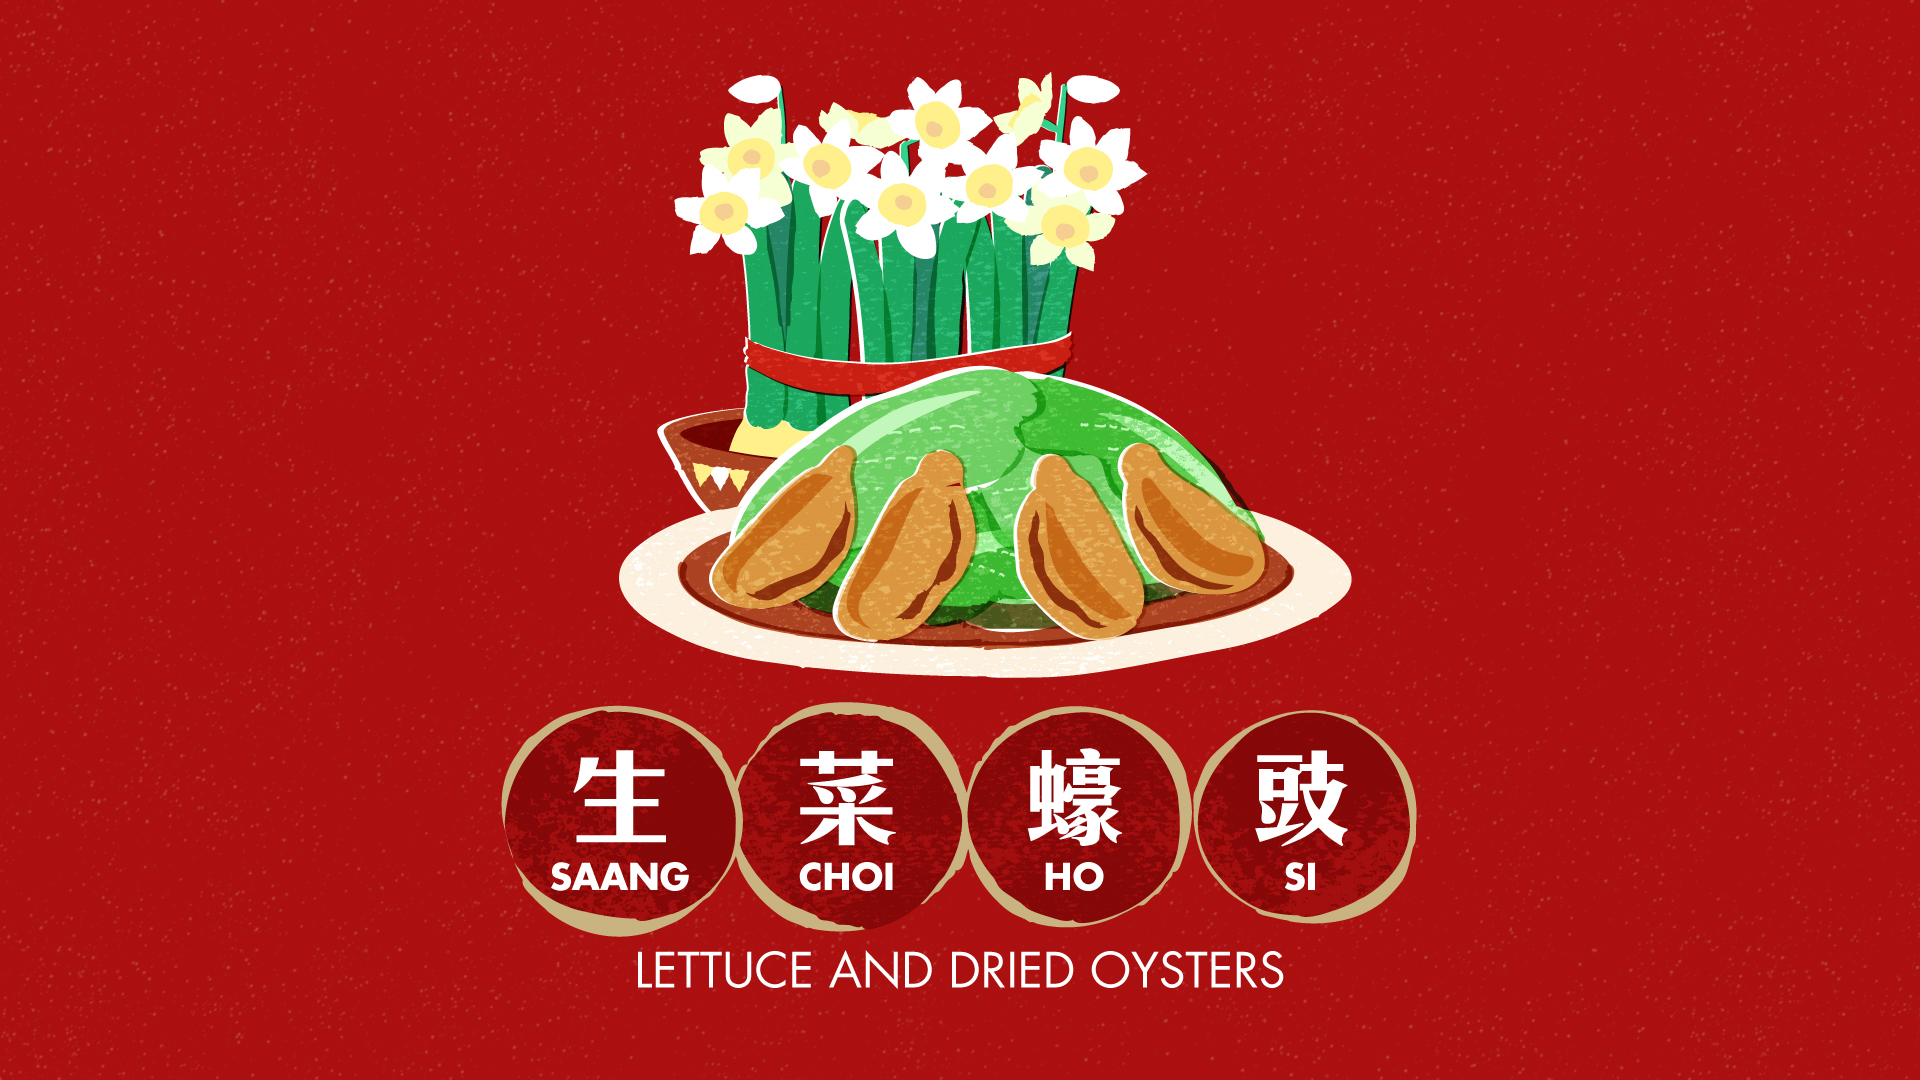 food_lettuce_and_dried_oysters